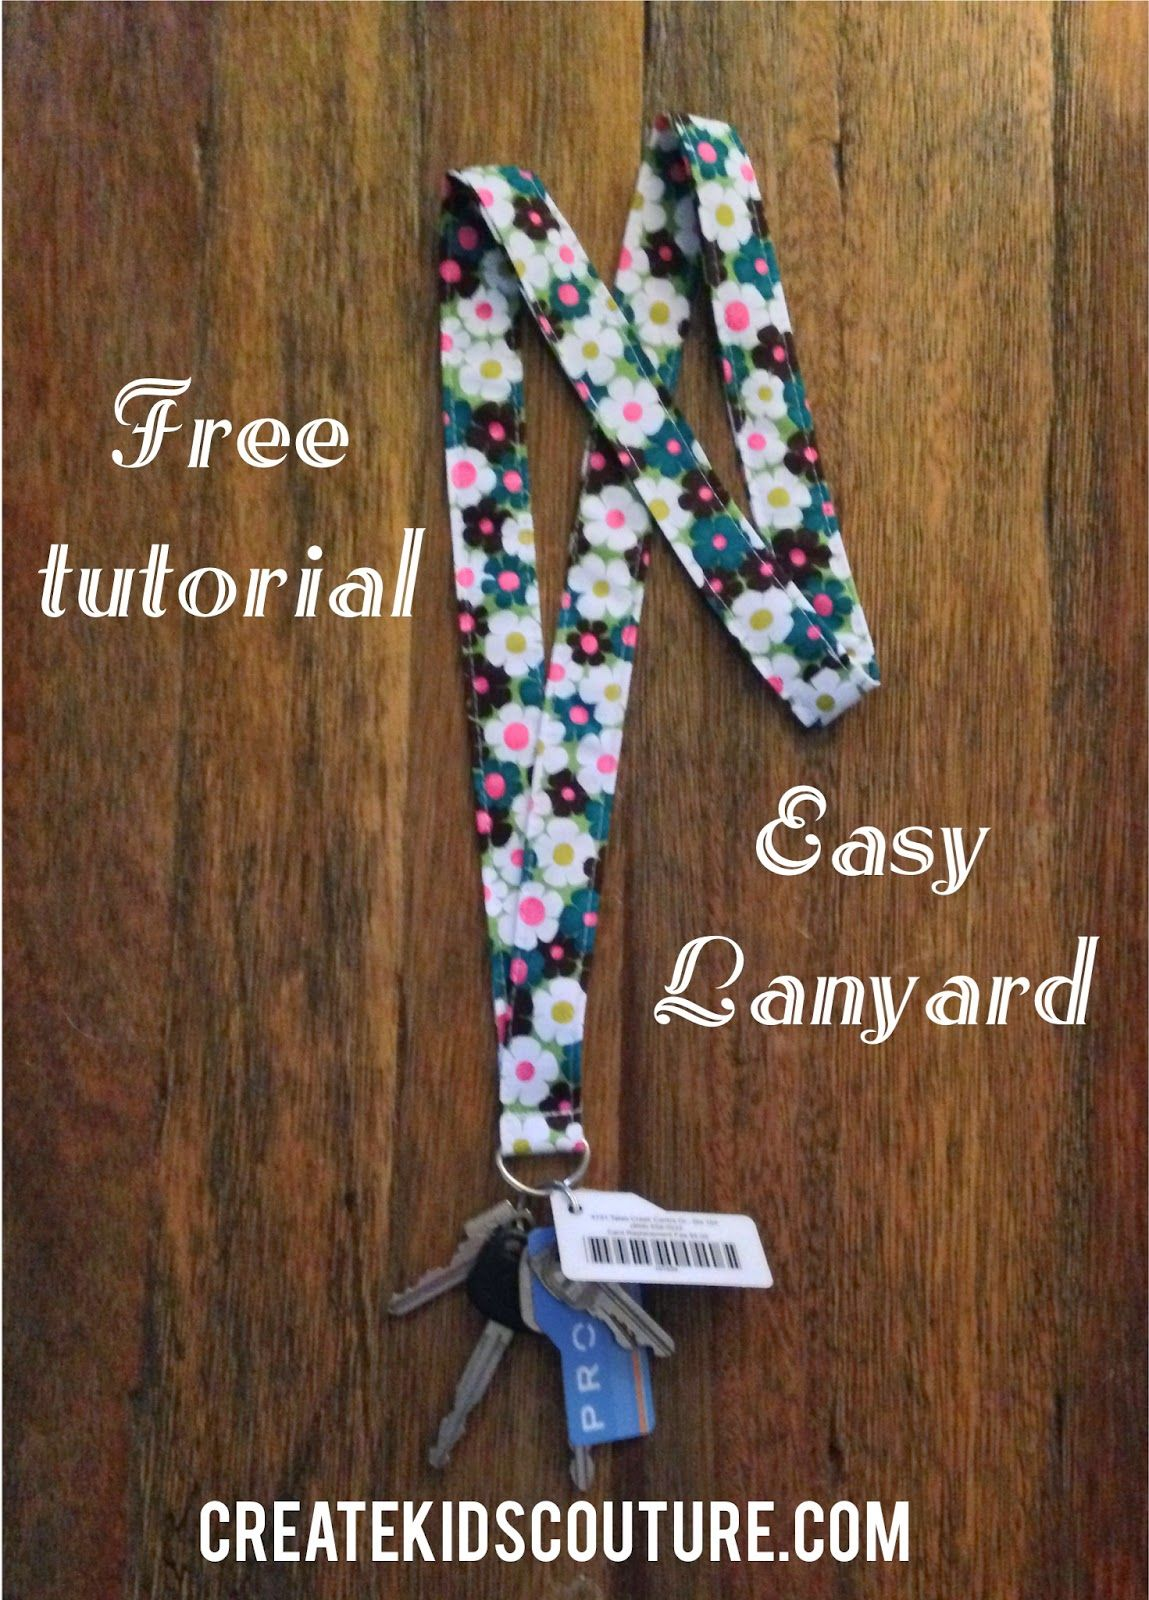 3 Easy Diy Storage Ideas For Small Kitchen: Fabric Lanyard Tutorial - Quick And Easy!